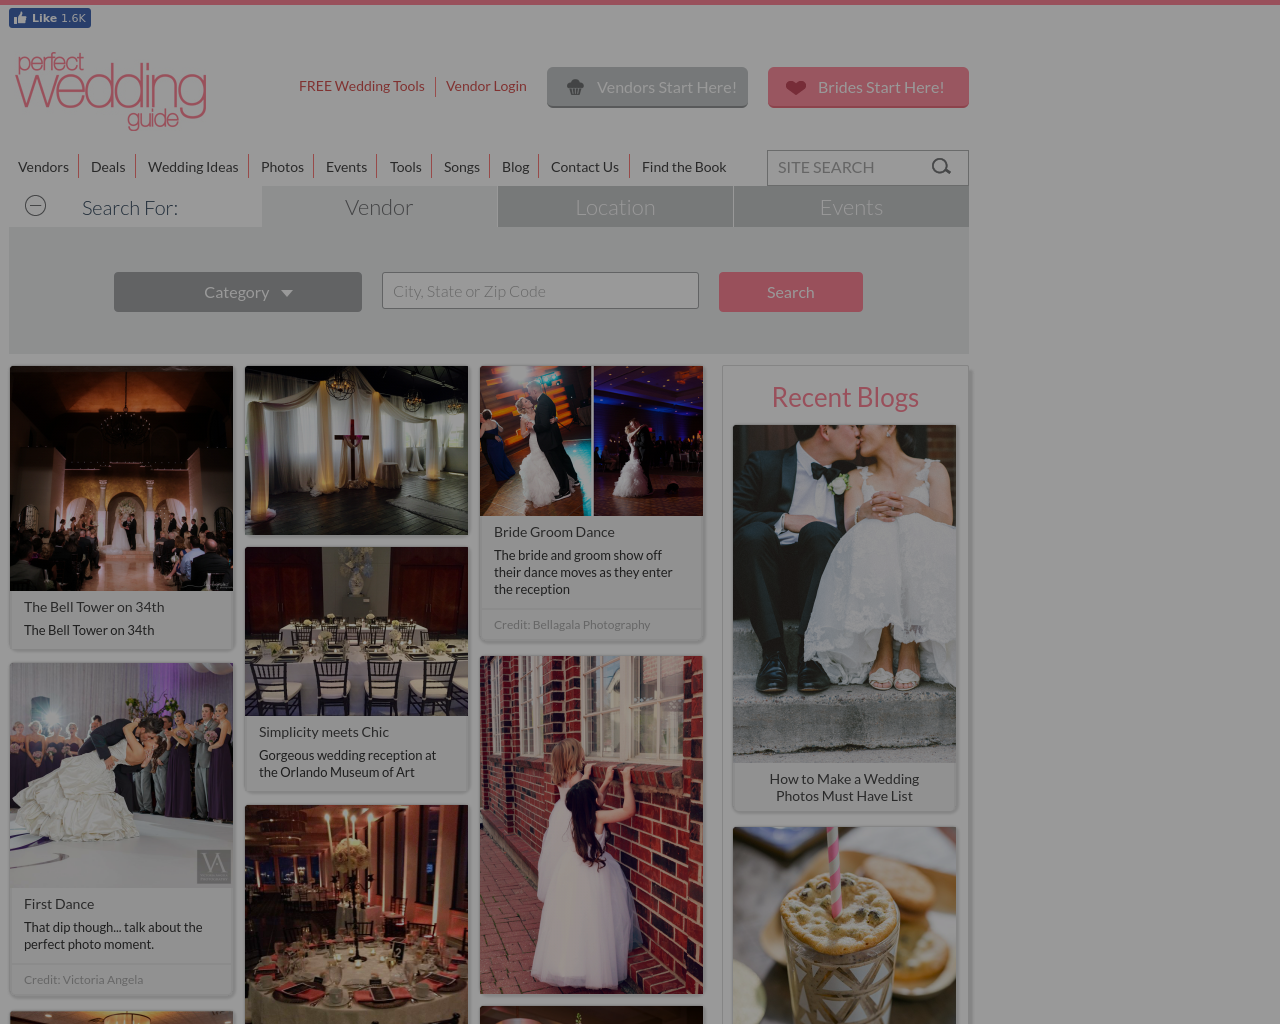 Perfect-Wedding-Guide-Advertising-Reviews-Pricing